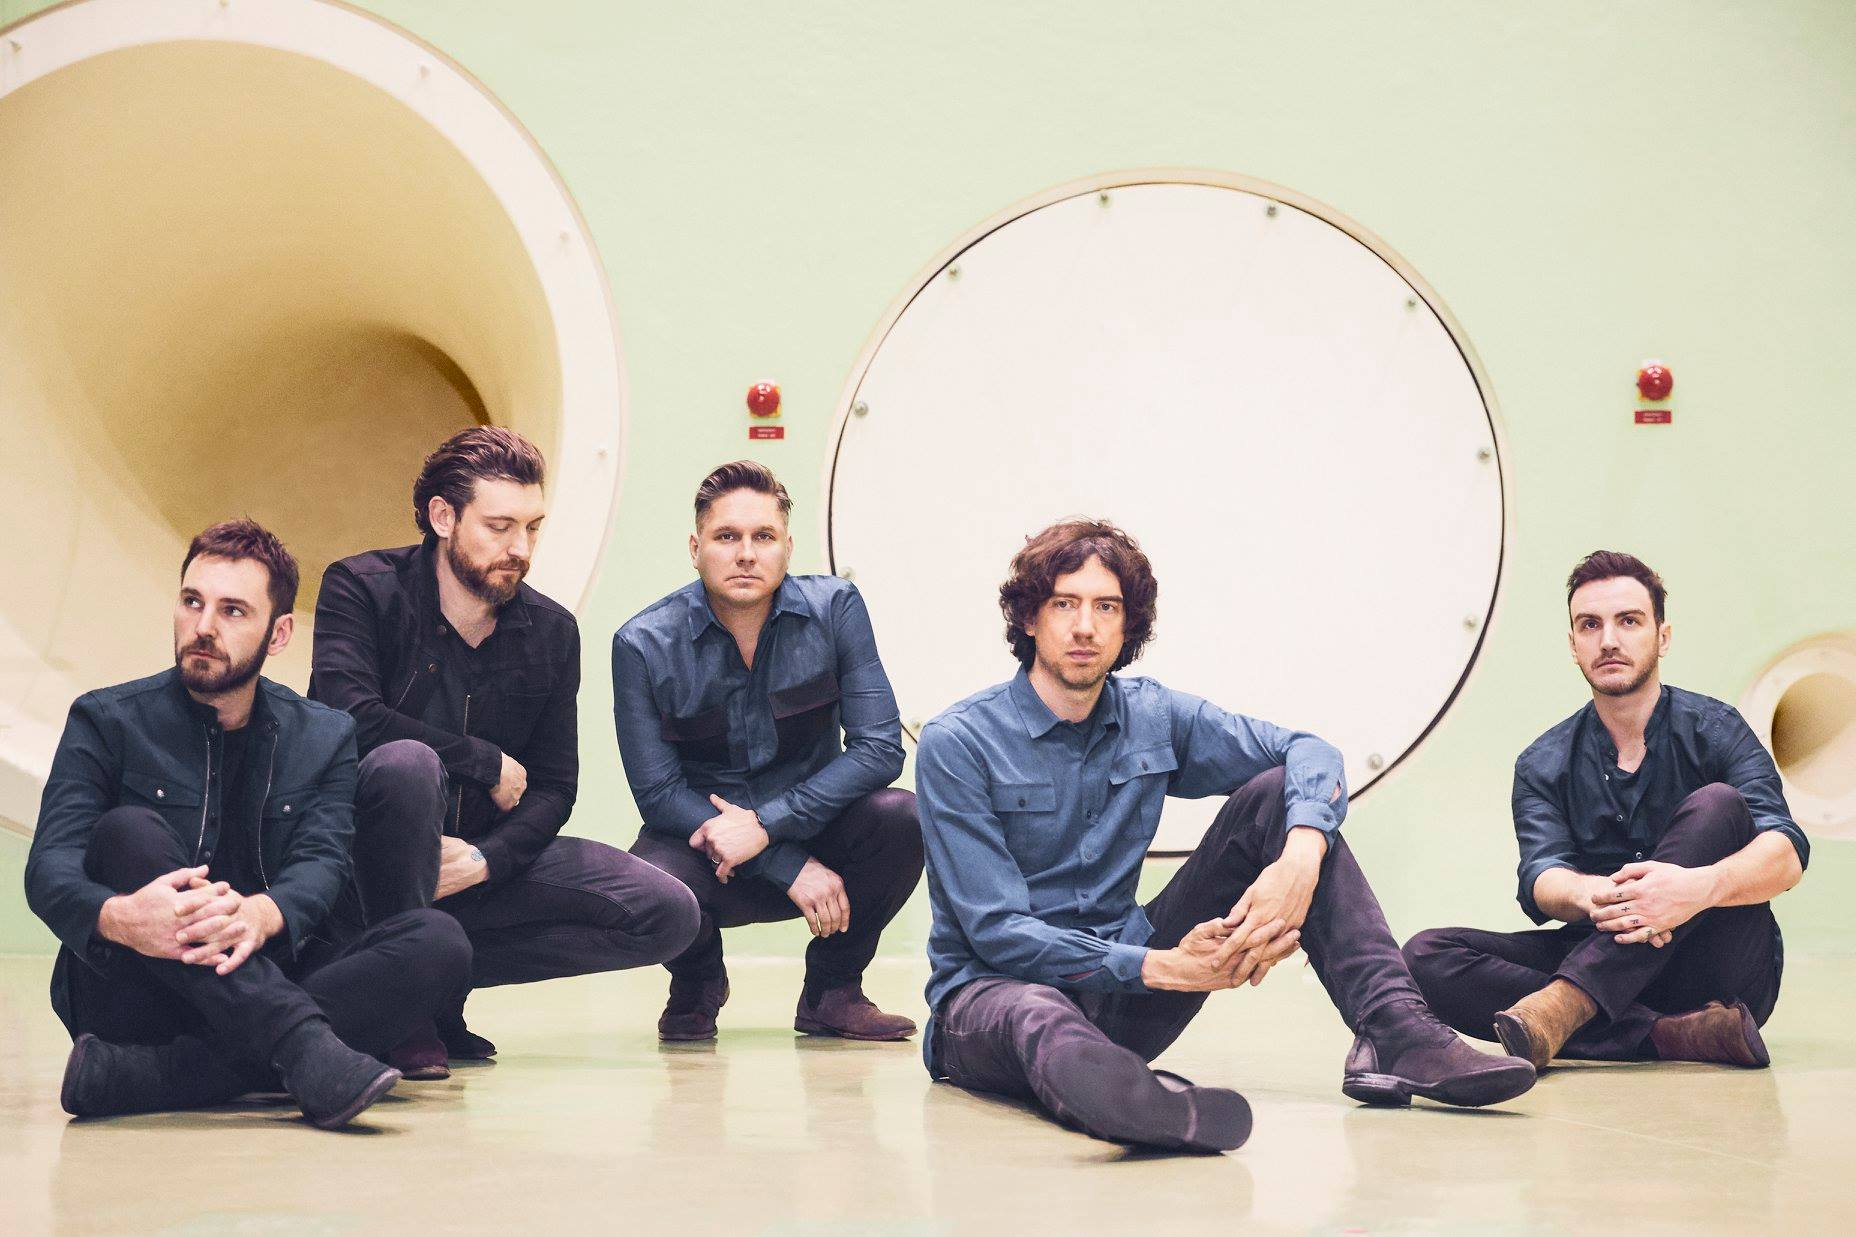 snow patrol upcoming concerts in singapore in 2019